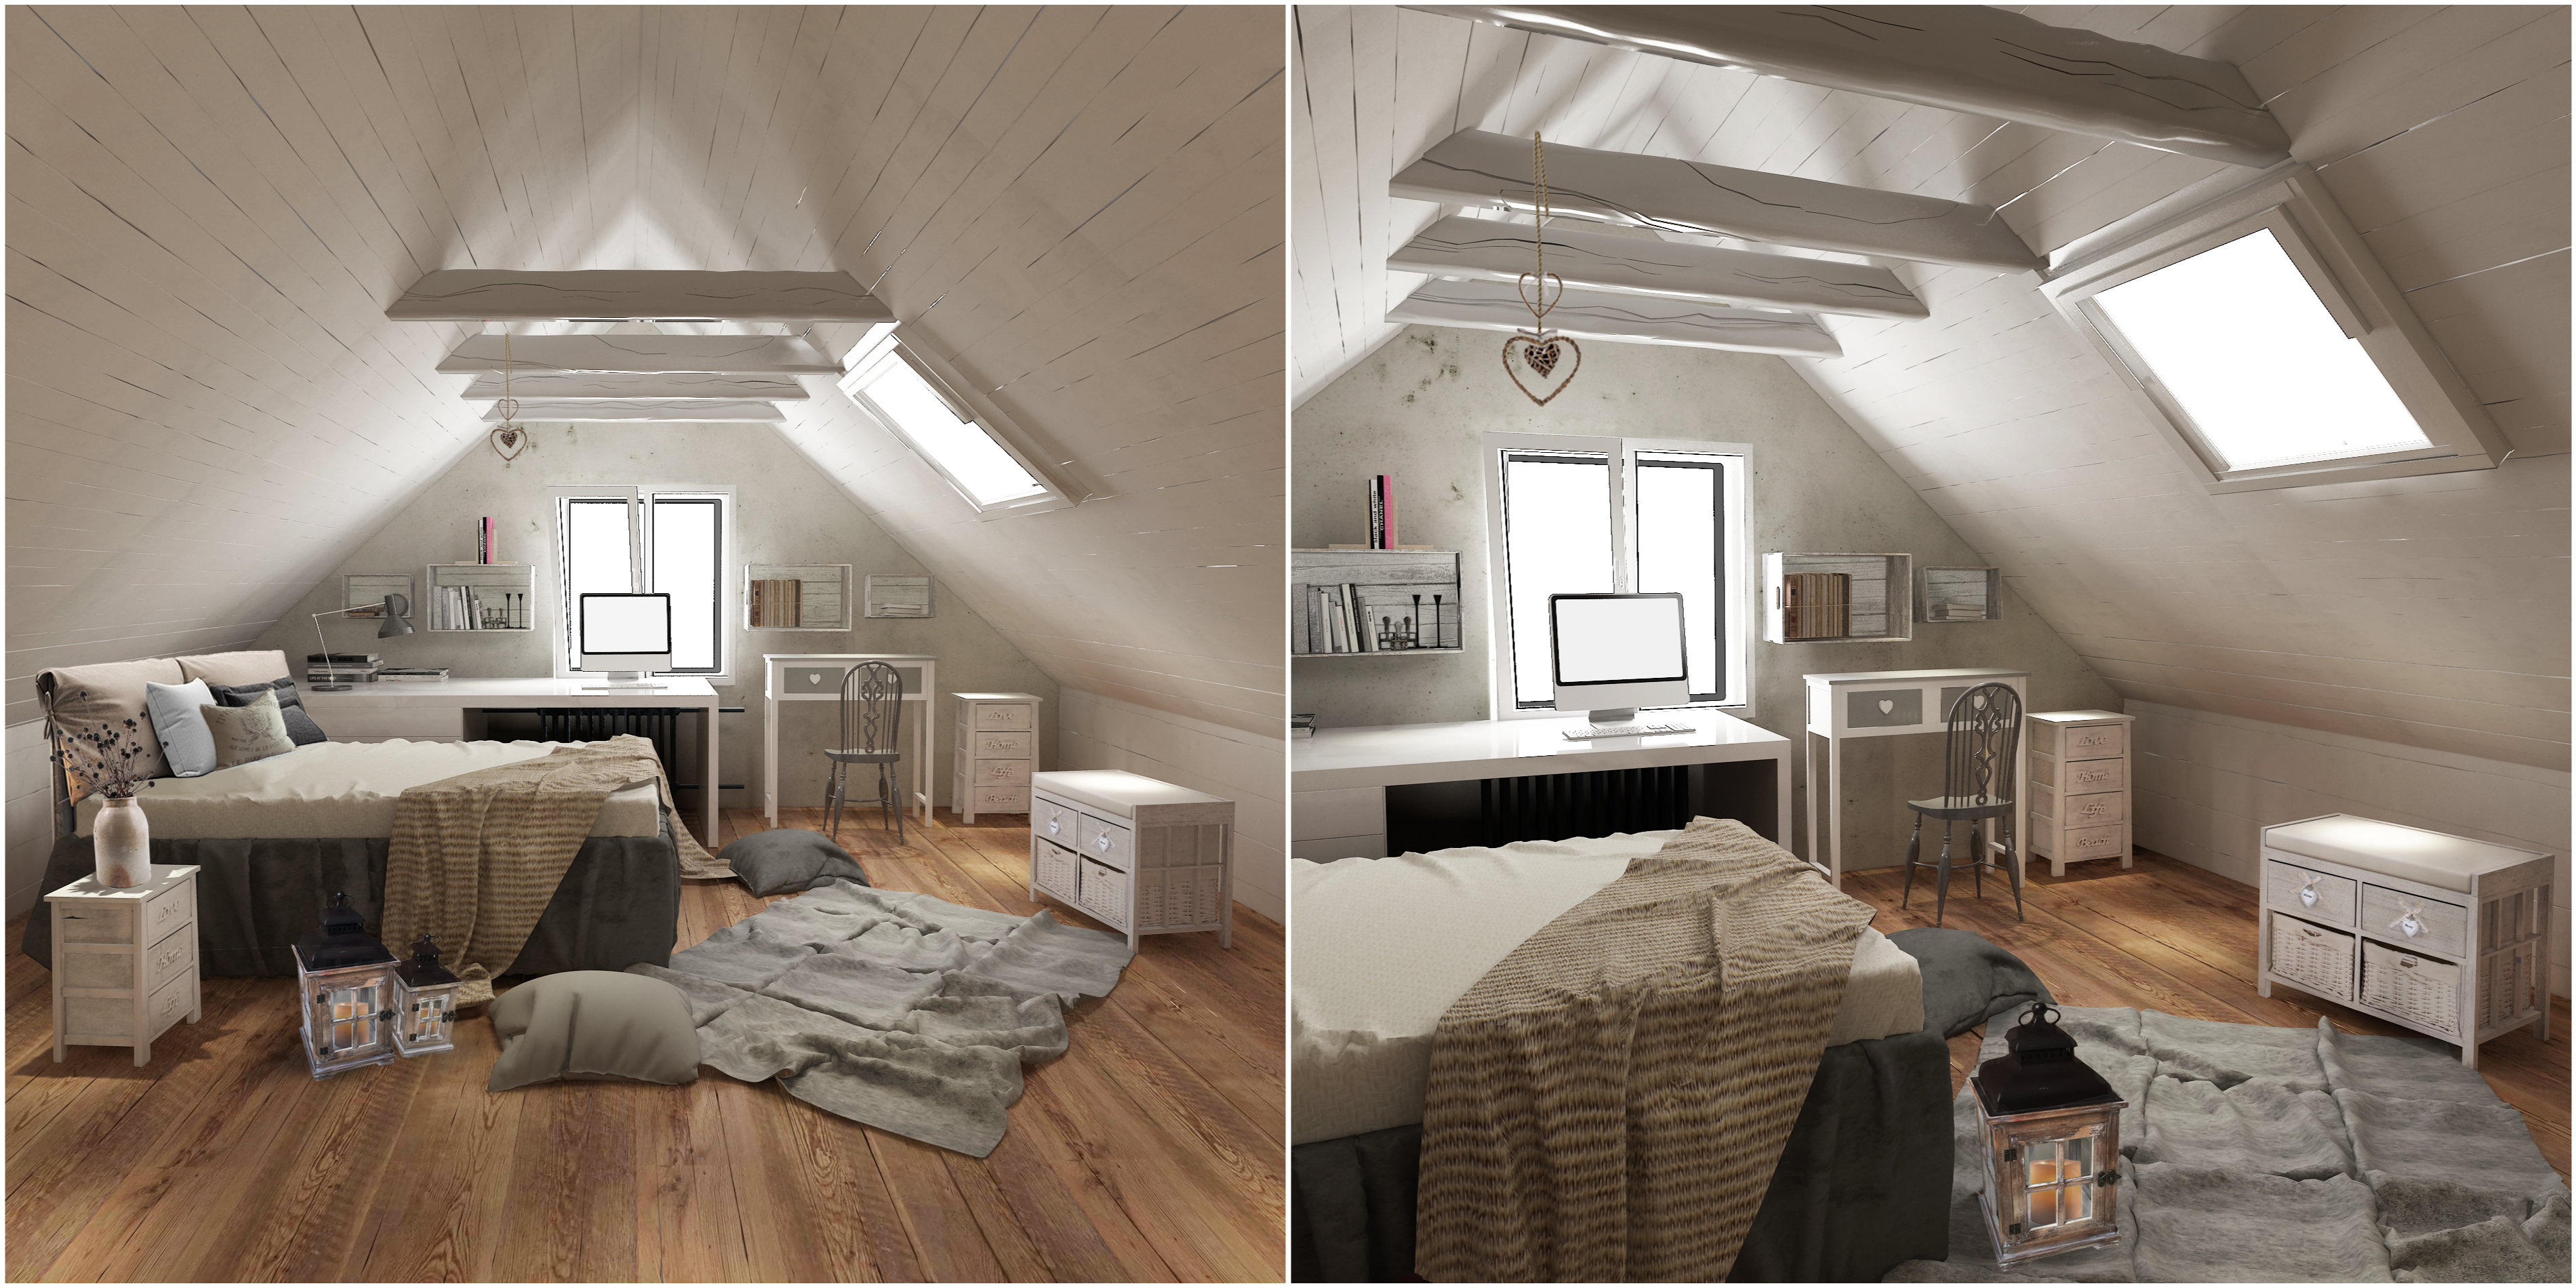 5 idee per arredare la camera da letto in stile shabby chic for Idee per la camera